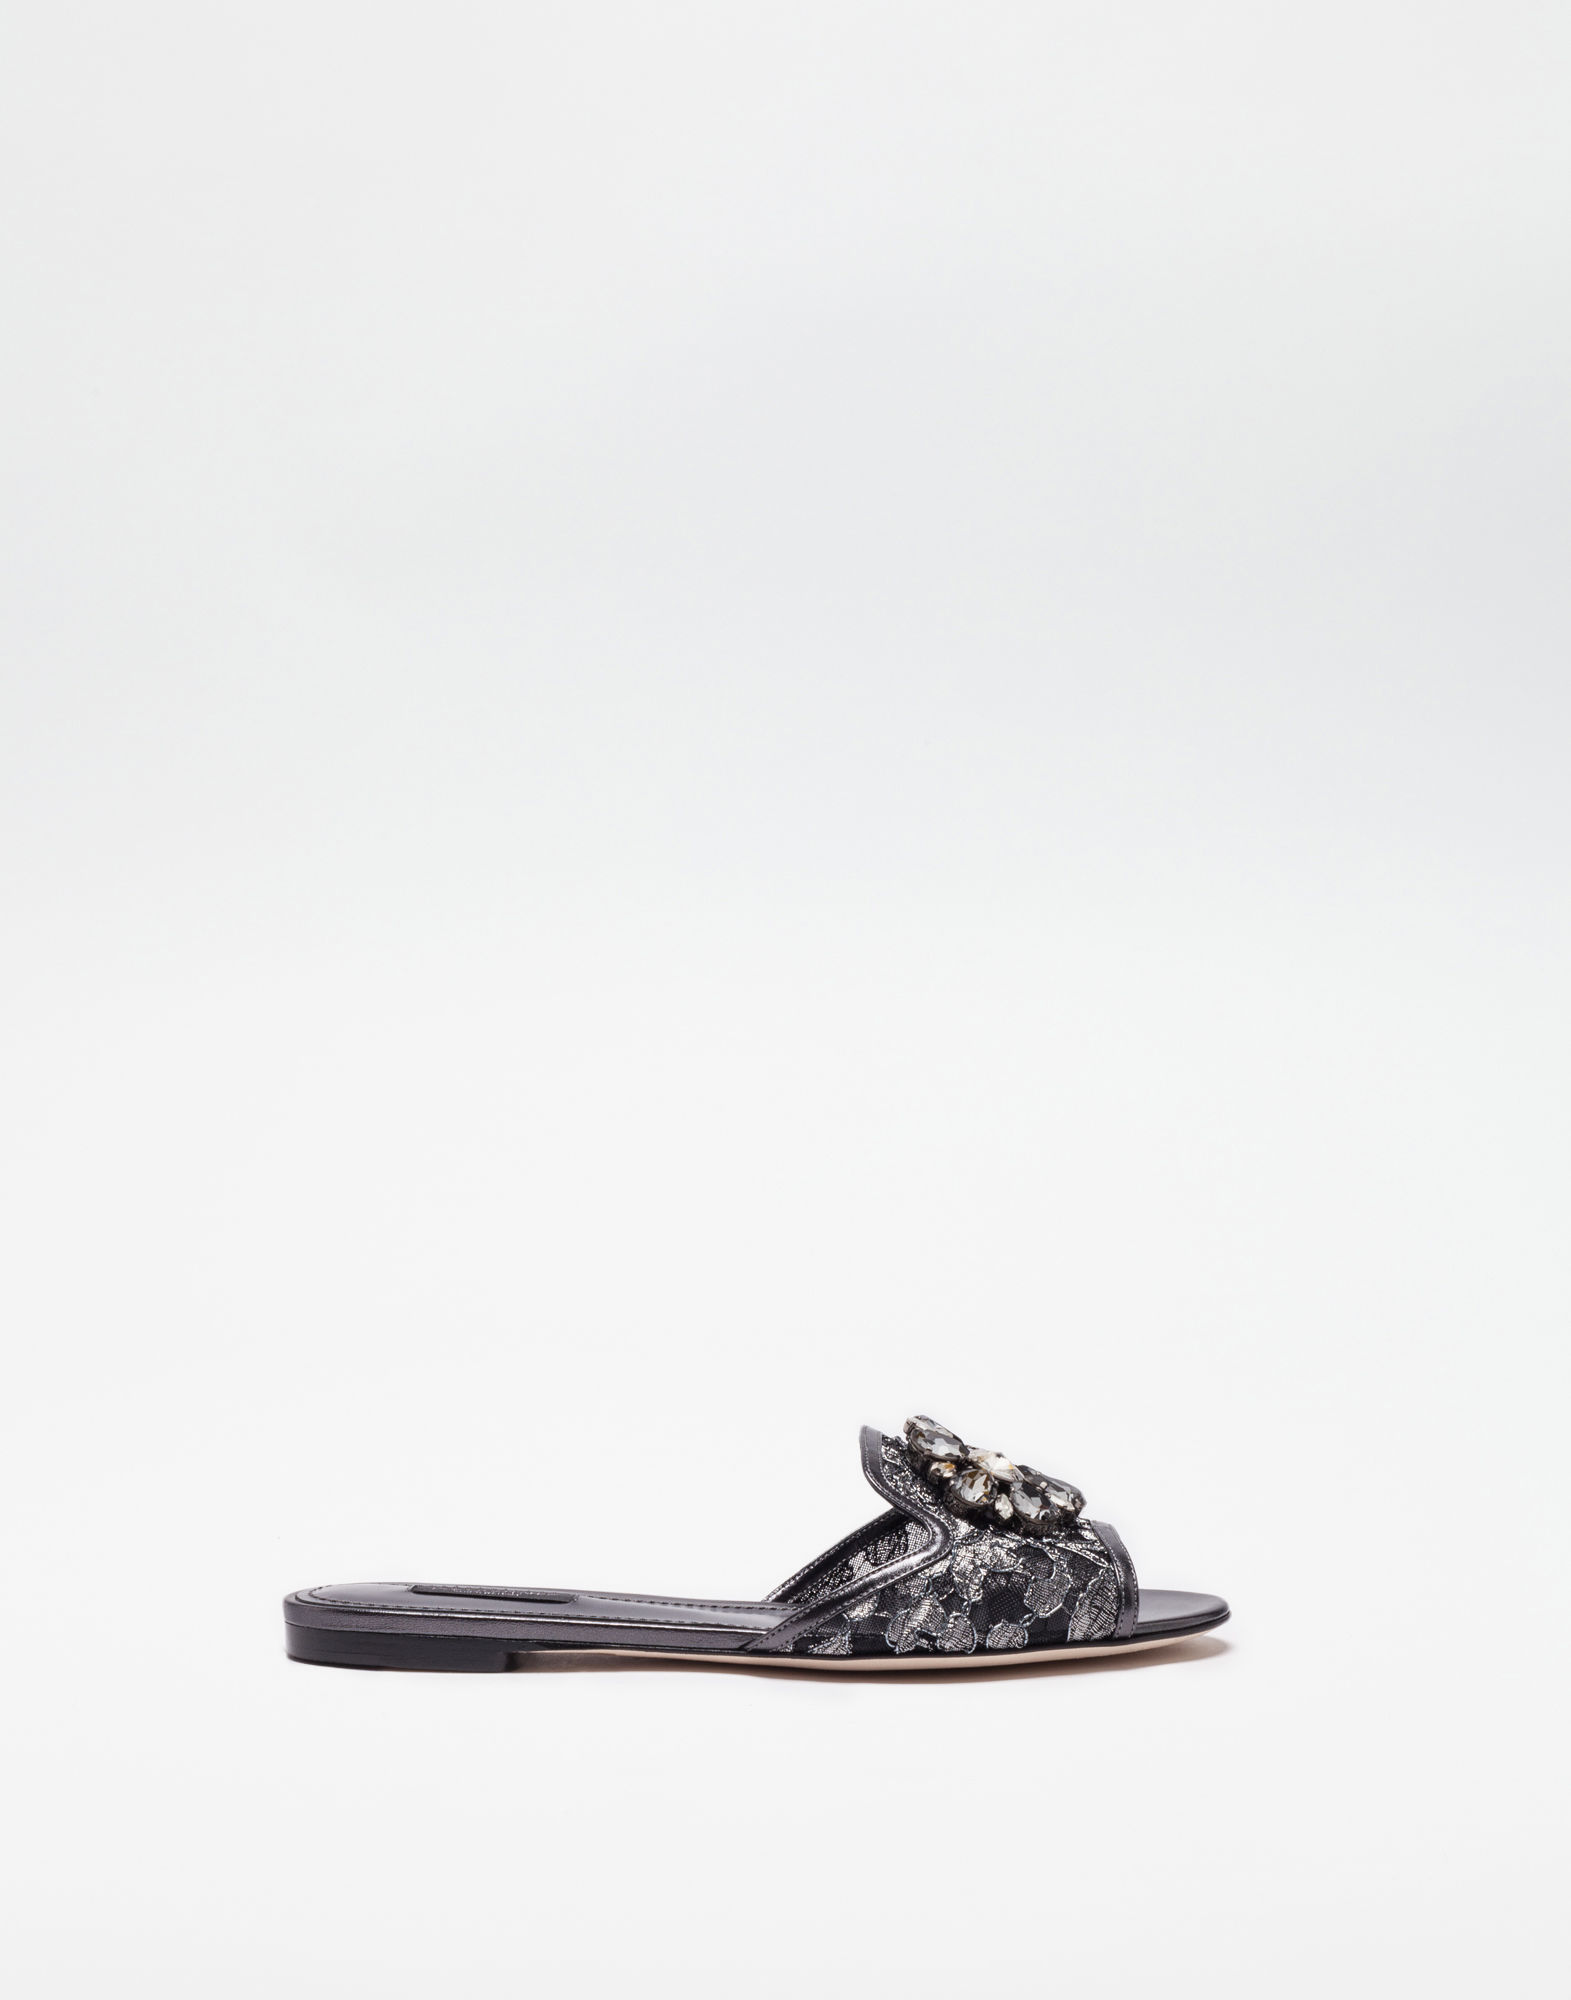 Embellished Corded Lace And Lizard-Effect Leather Slides, Grey